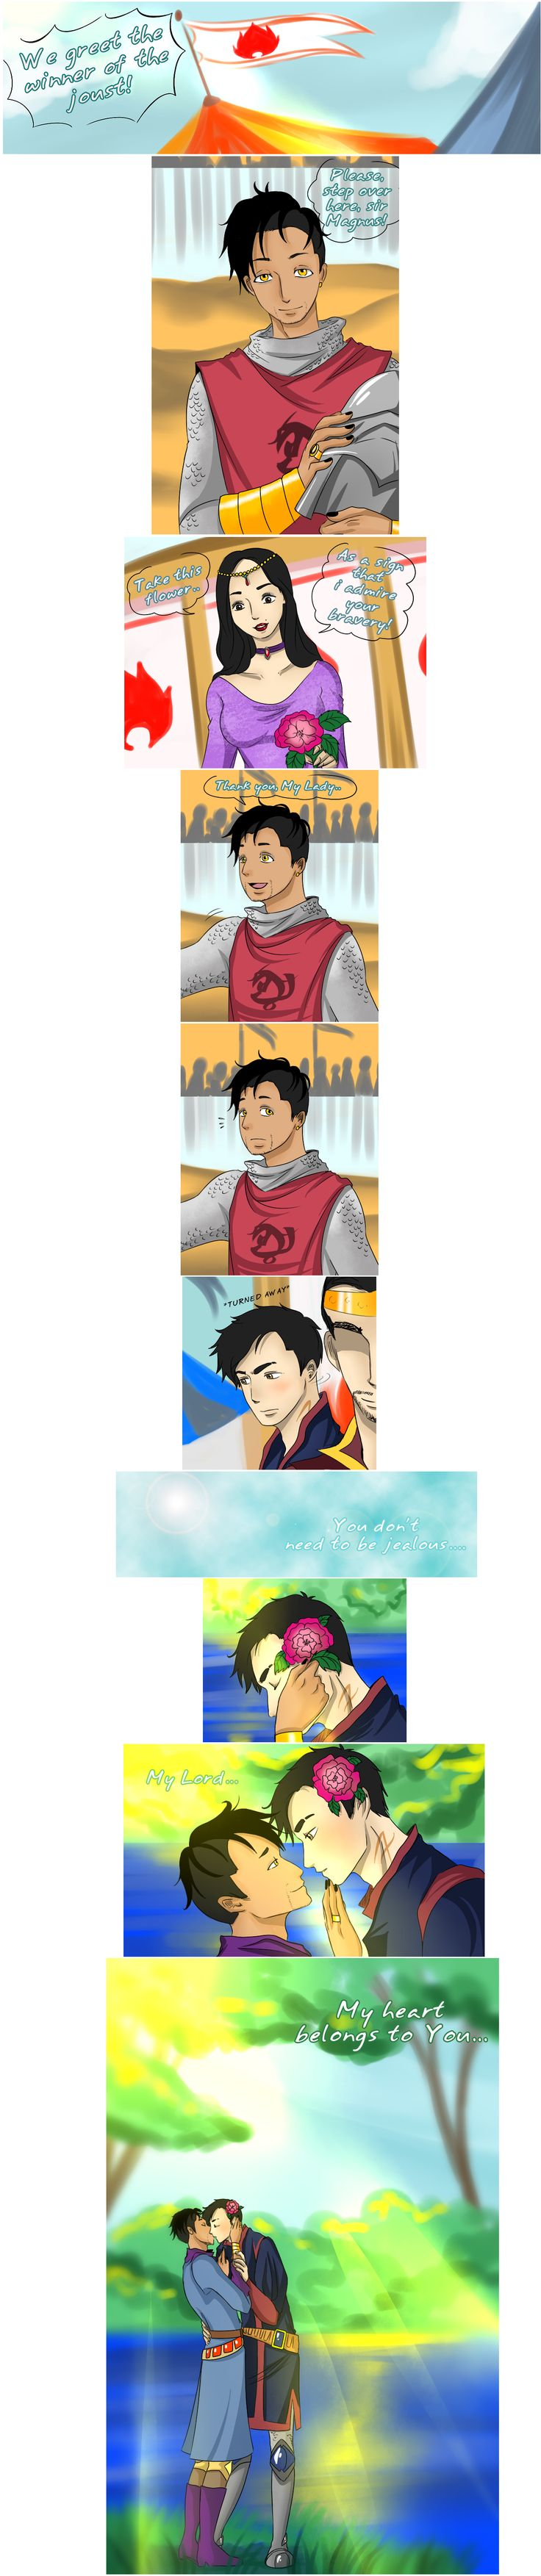 Back to the Middle Ages Malec week 2017 ...  From the hands off umkasandiary ... shadowhunters, alexander 'alec' lightwood, magnus bane, the mortal instruments, malec, robert lightwood, isabelle lightwood